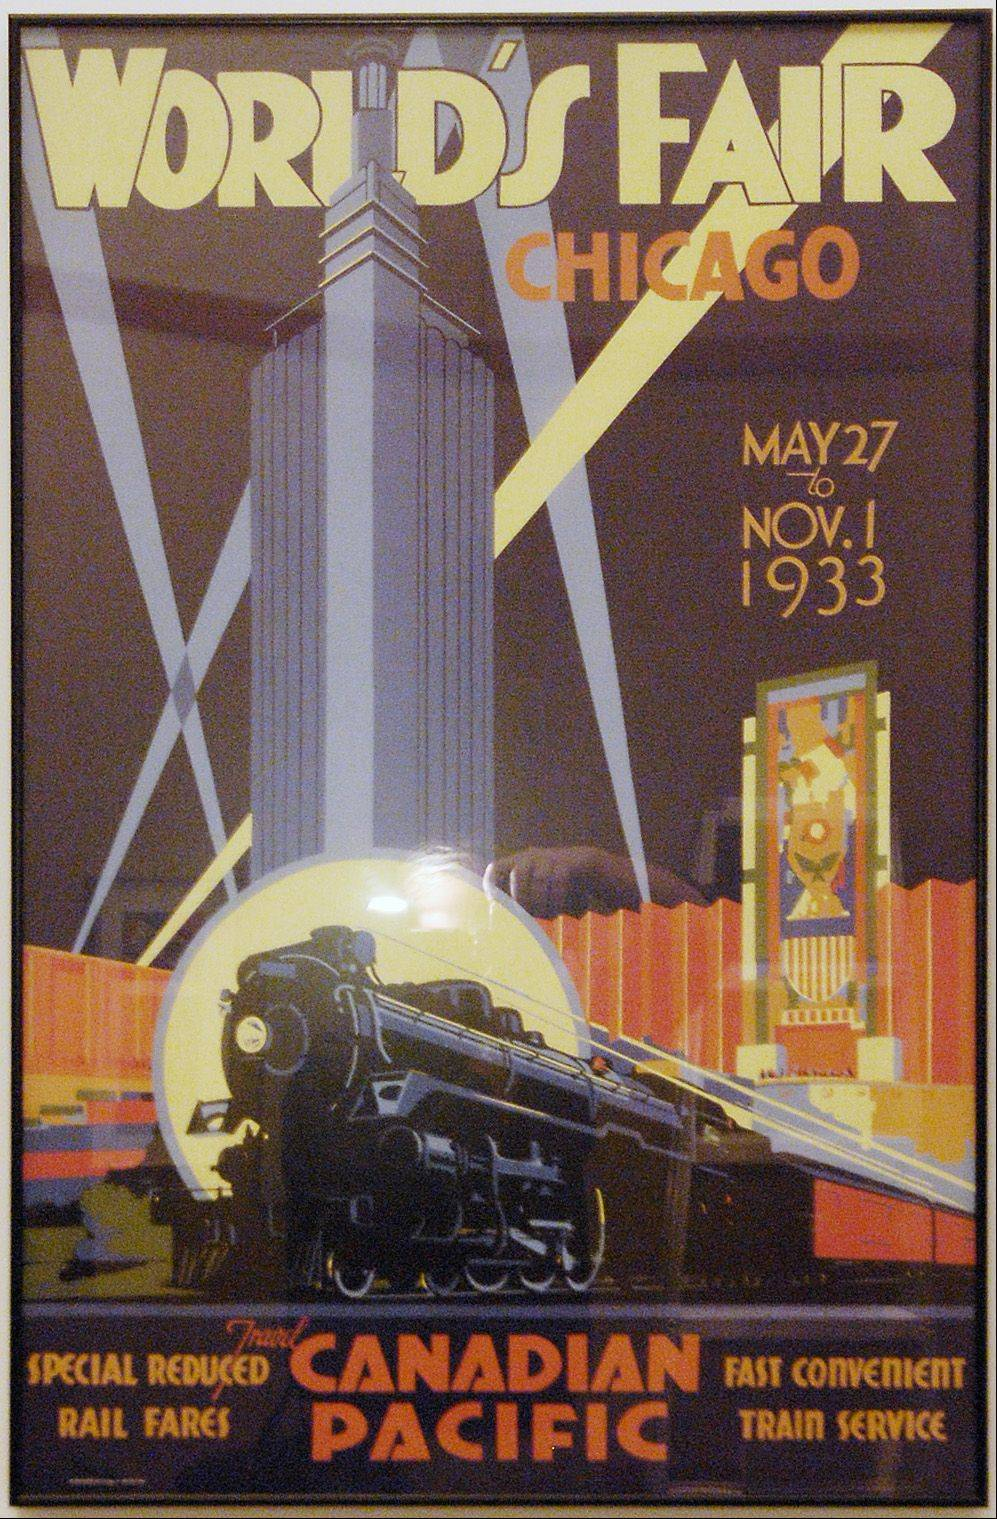 A 1933 Chicago World's Fair poster that is part of the Hagley Museum's traveling show on display at the Elmhurst Historical Museum.